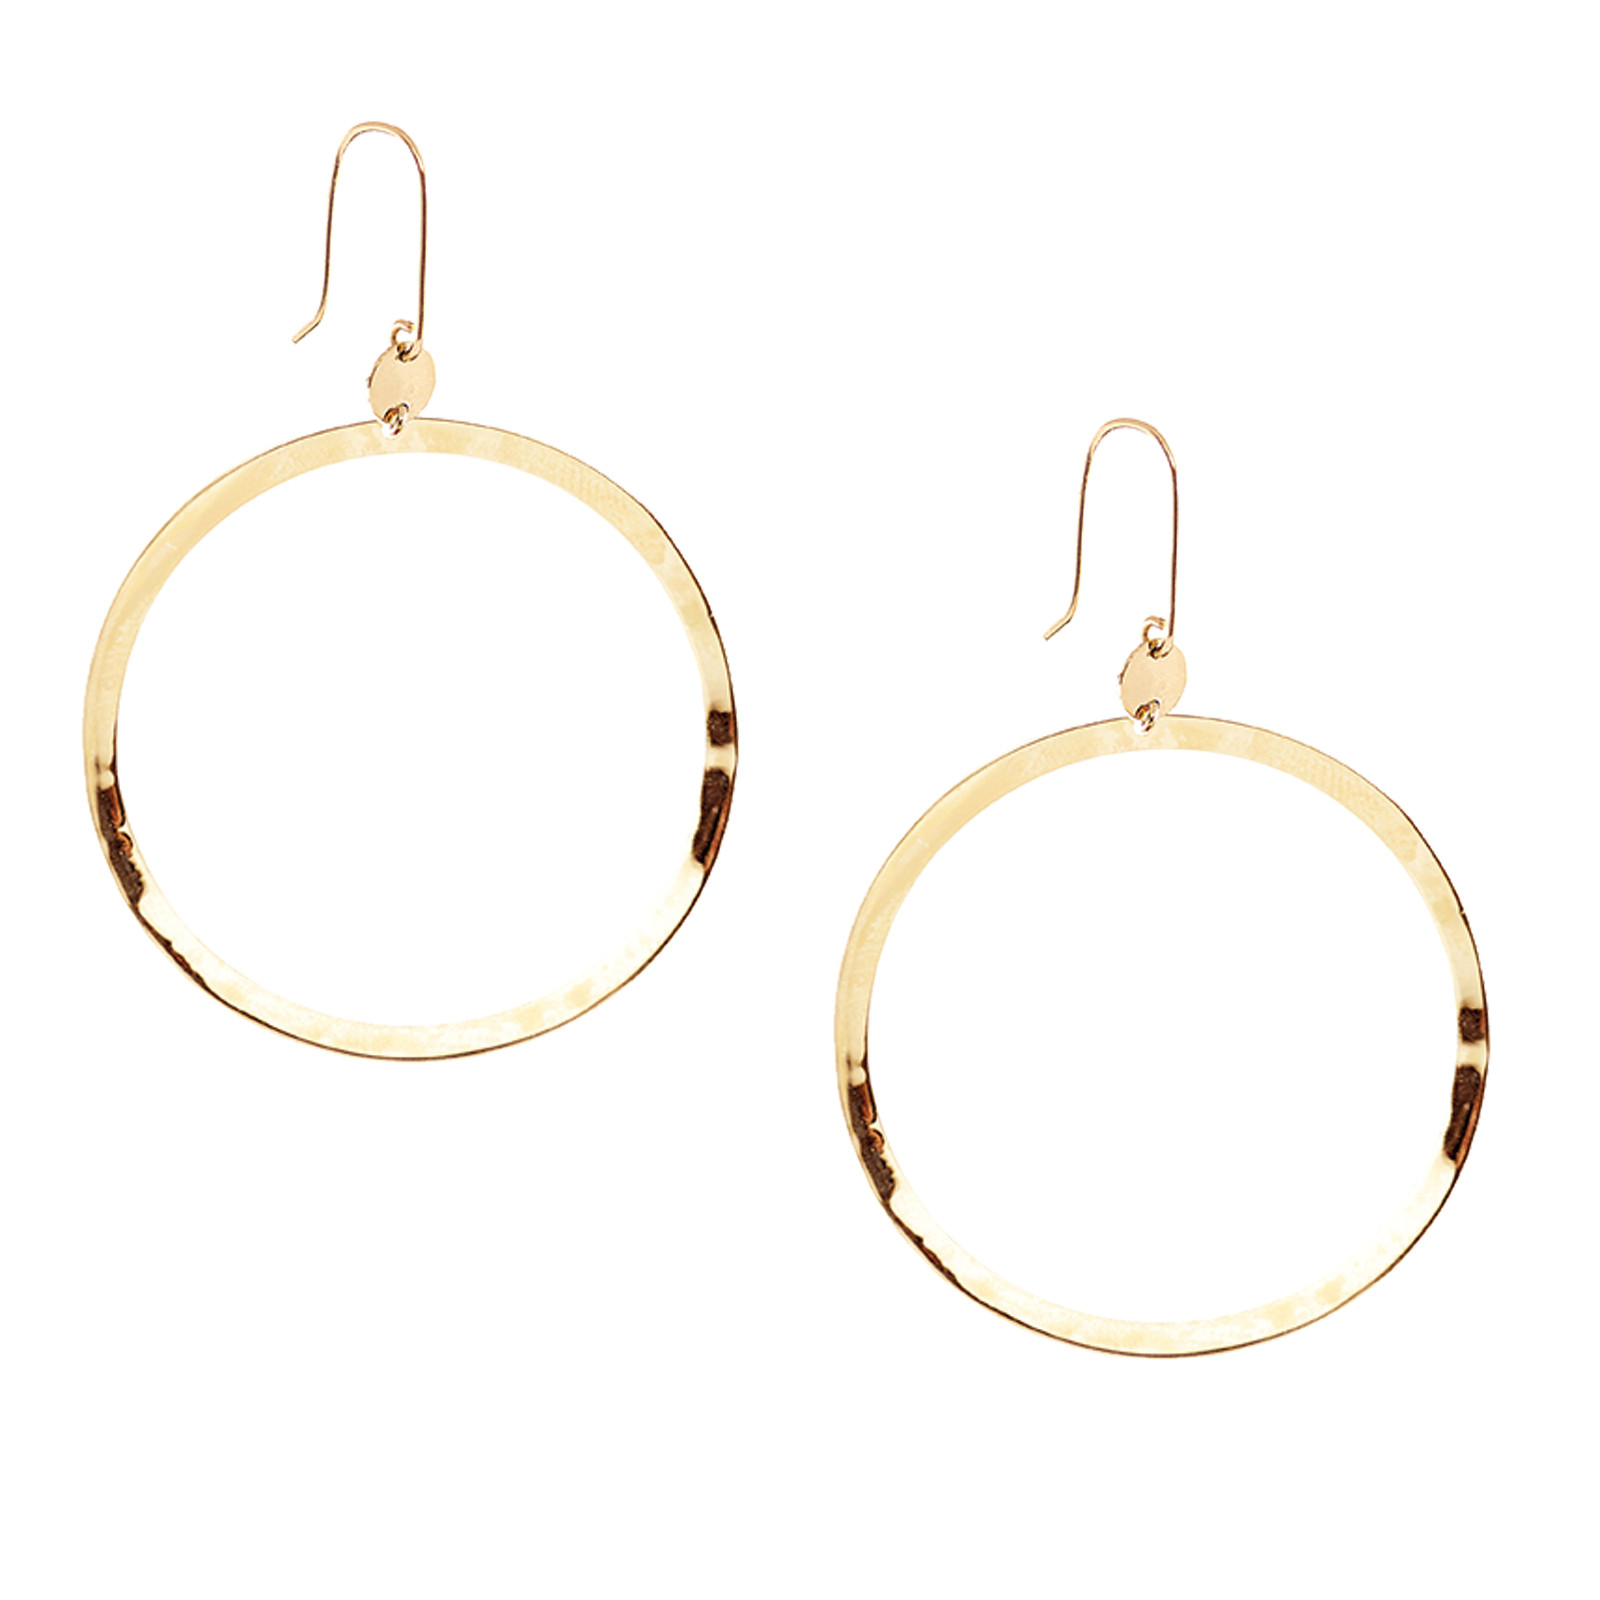 Lana Jewelry Small Wave Hoop Earrings